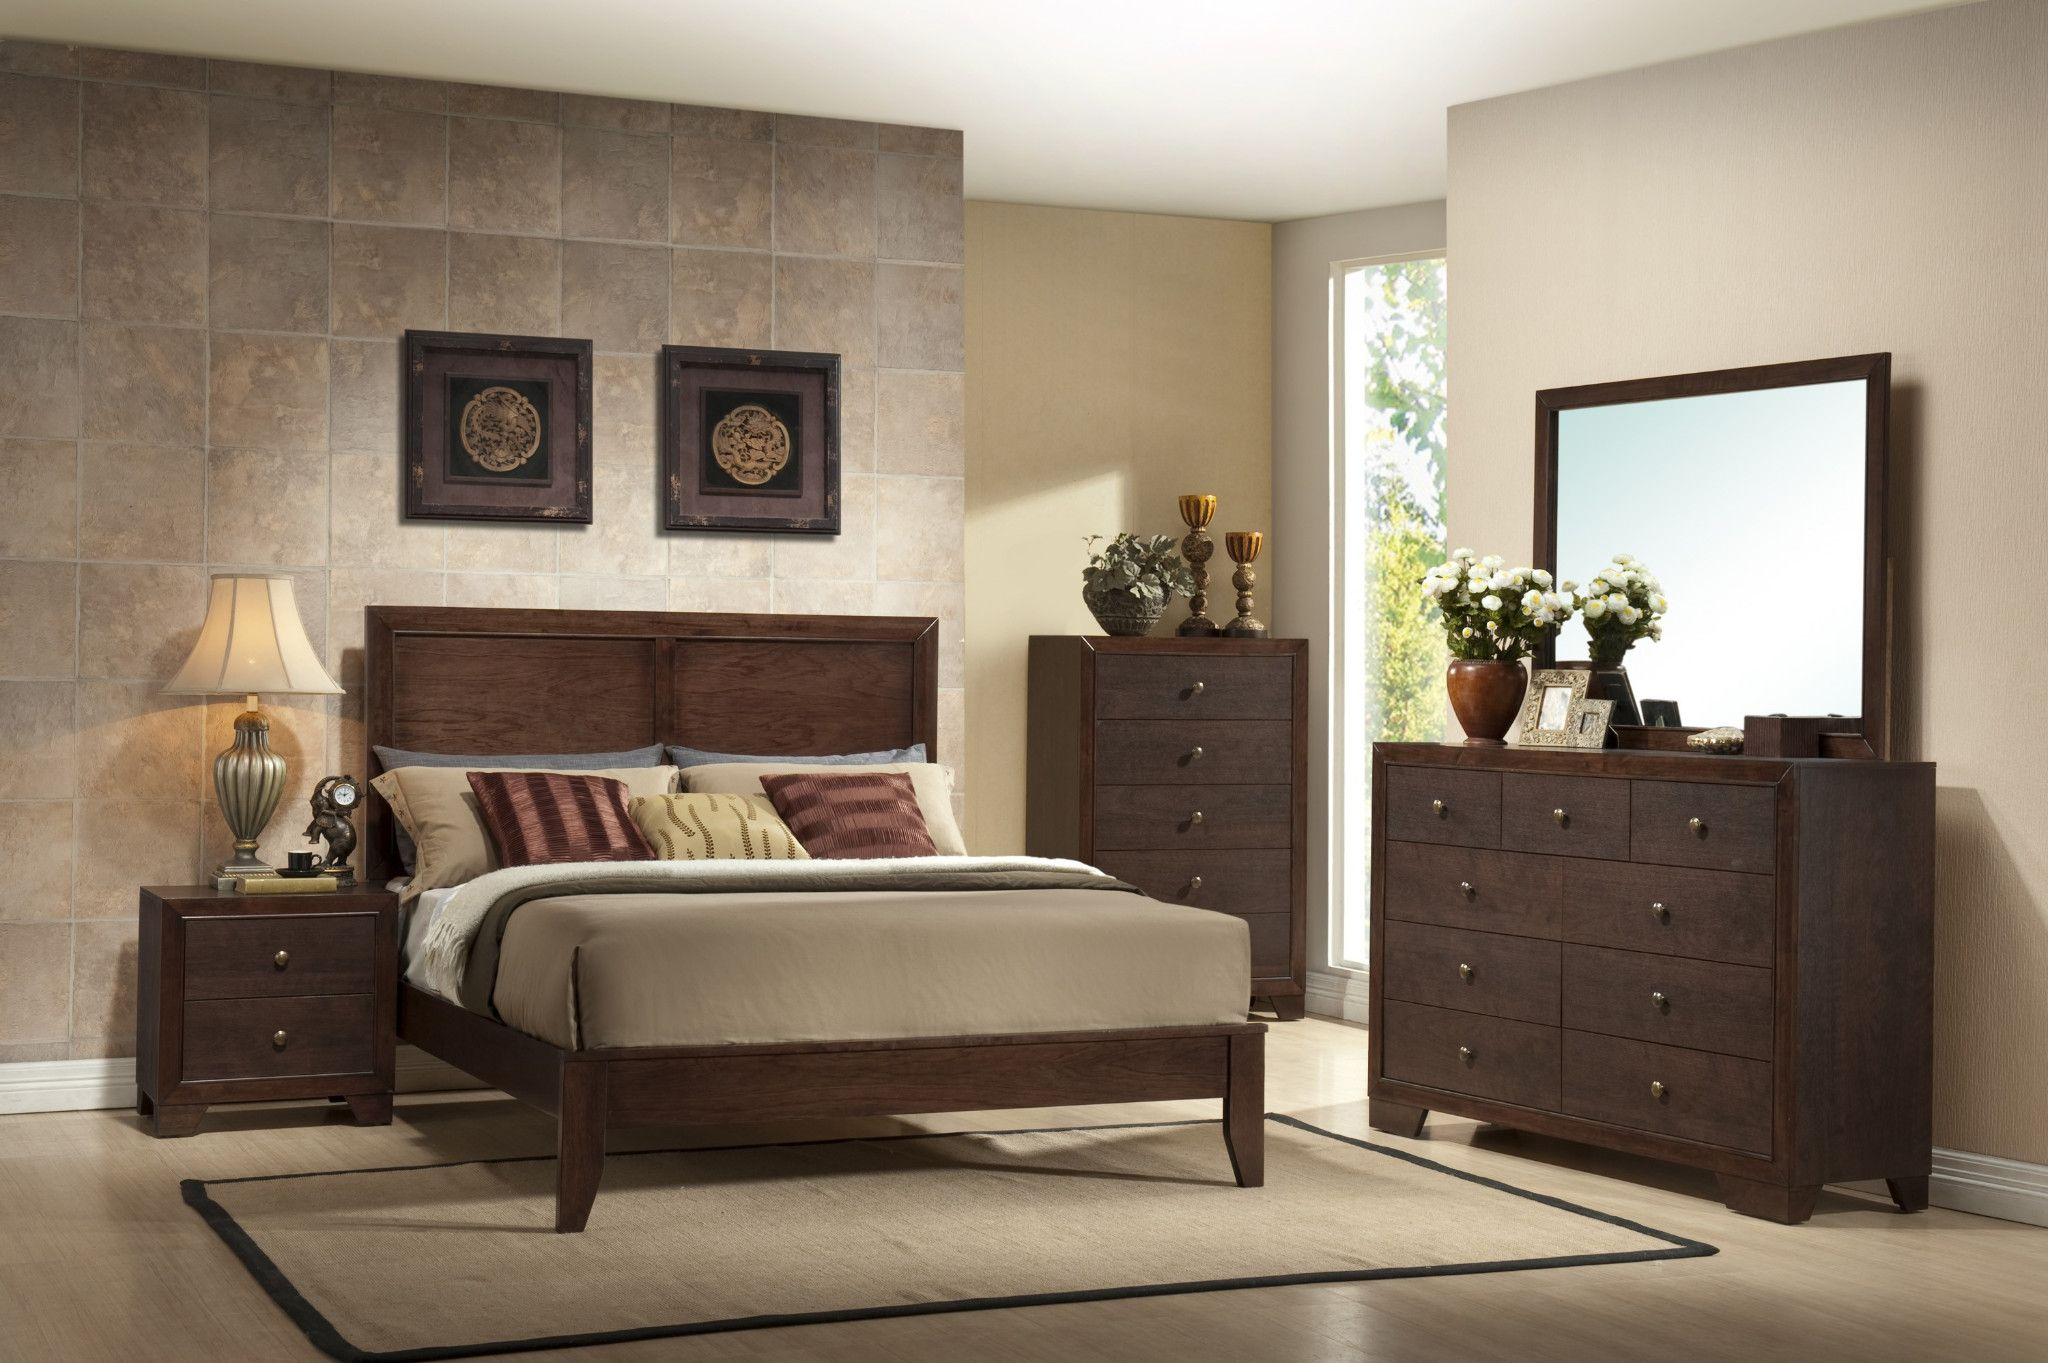 Silvia Bedroom Suite 999 00 Queen Or 1099 00 King Individual